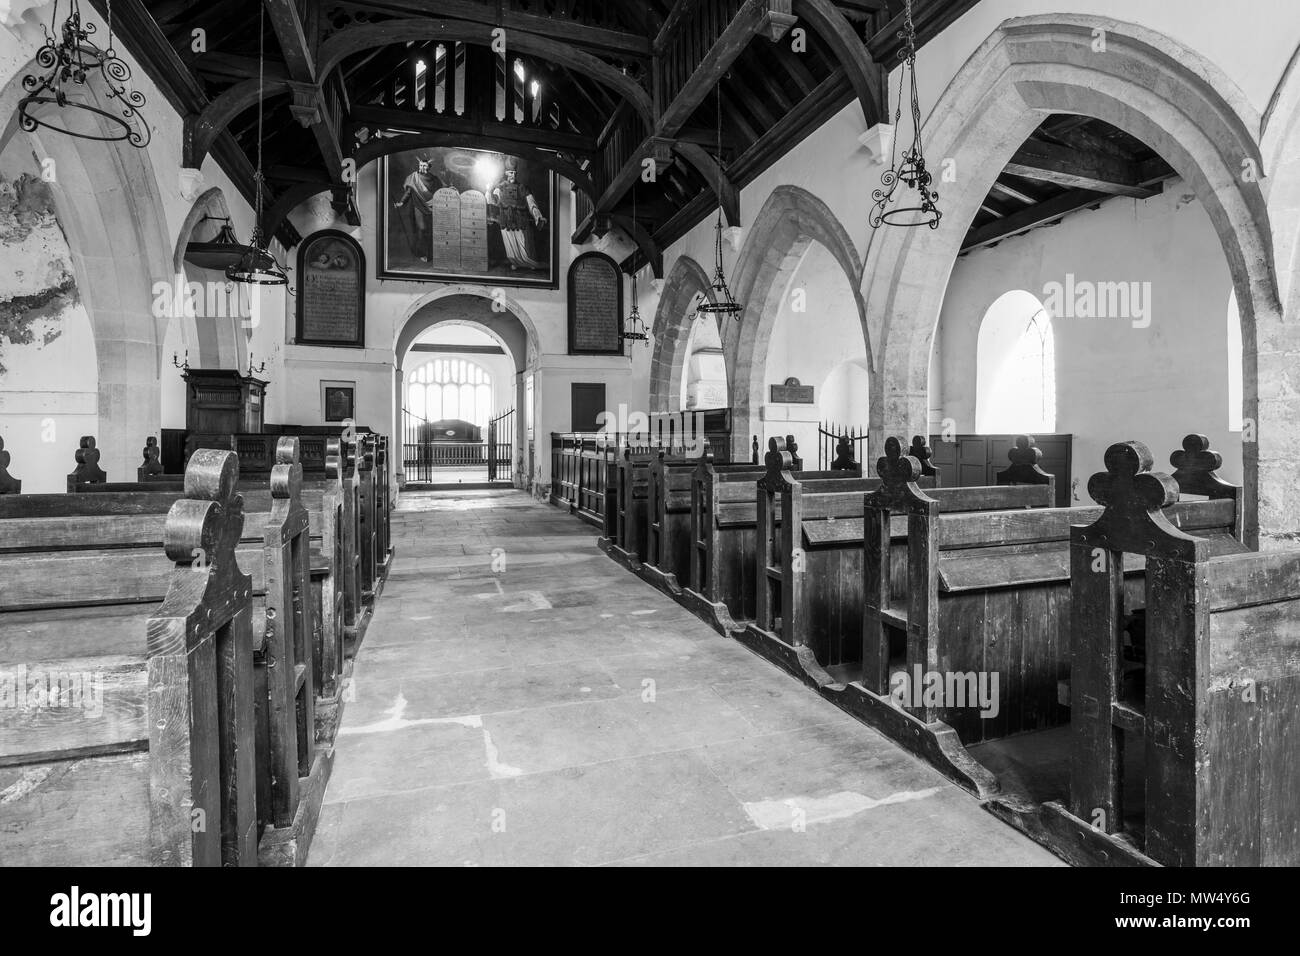 Interior b & w of historic St Martin's Church with wooden pews, aisle & hammerbeam roof in nave -  Allerton Mauleverer, North Yorkshire, England, UK. - Stock Image